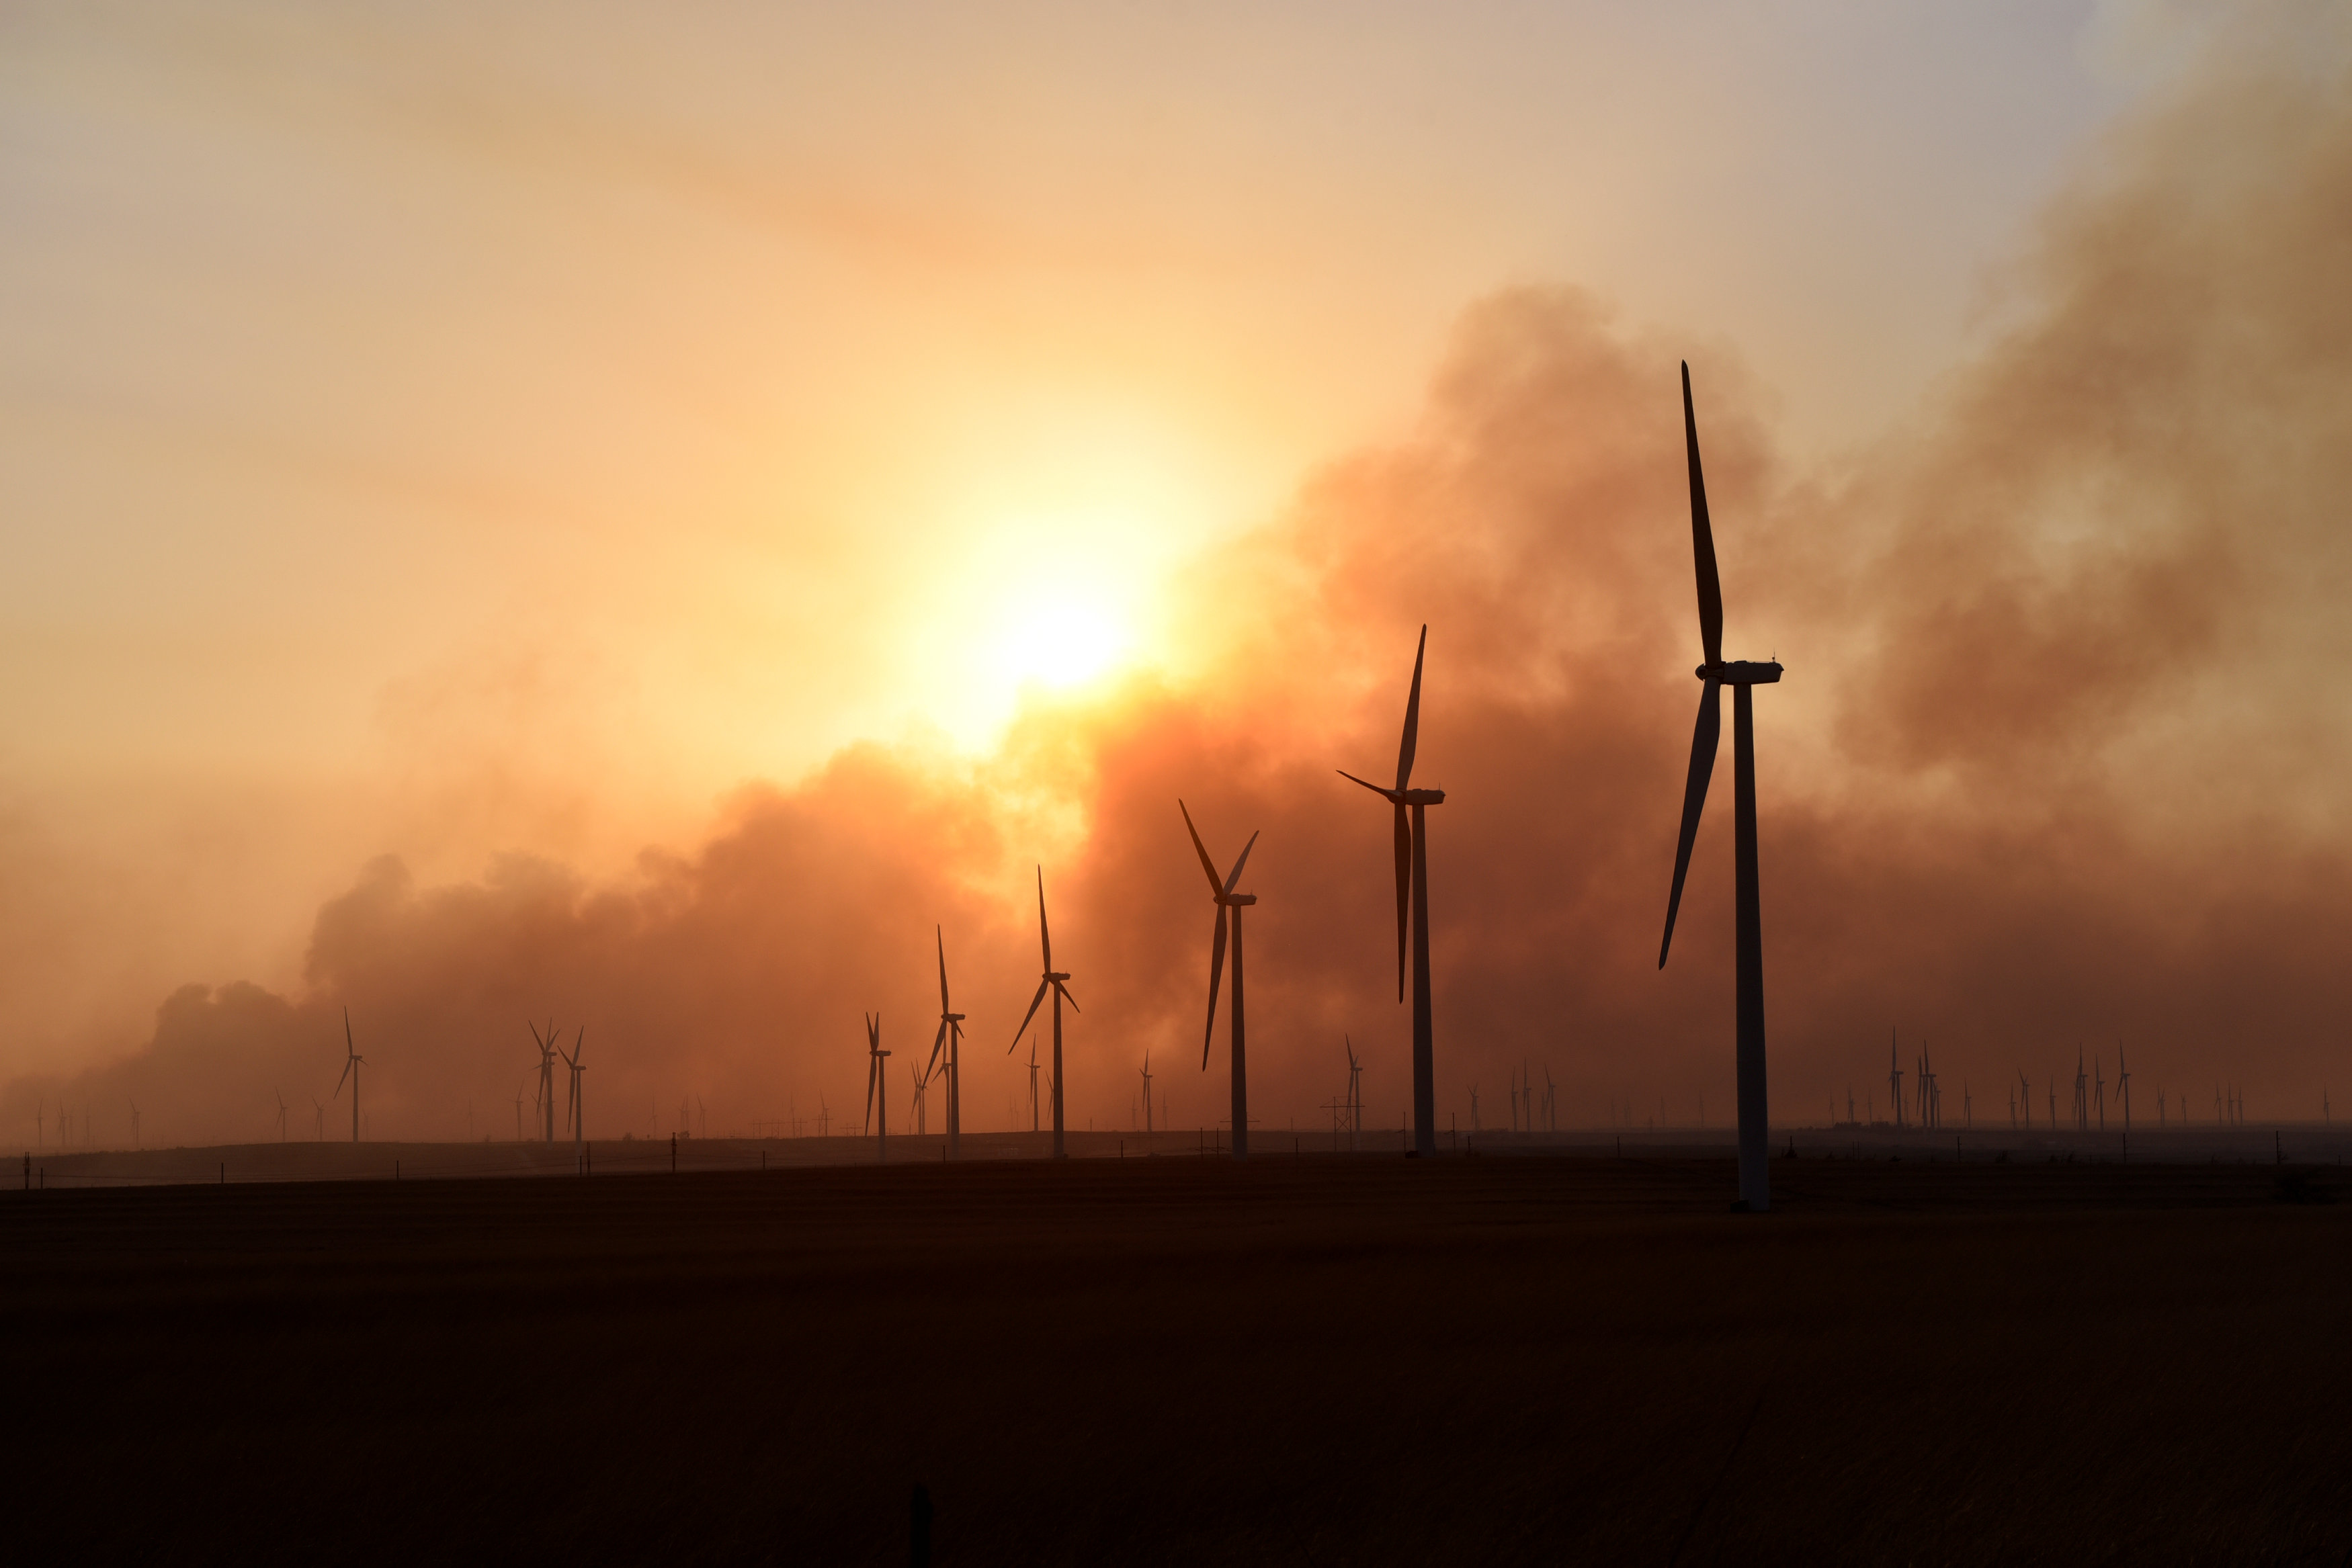 The sun sets through smoke from the Rhea fire on a wind farm near Seiling, Oklahoma, U.S. April 17, 2018. REUTERS/Nick Oxford